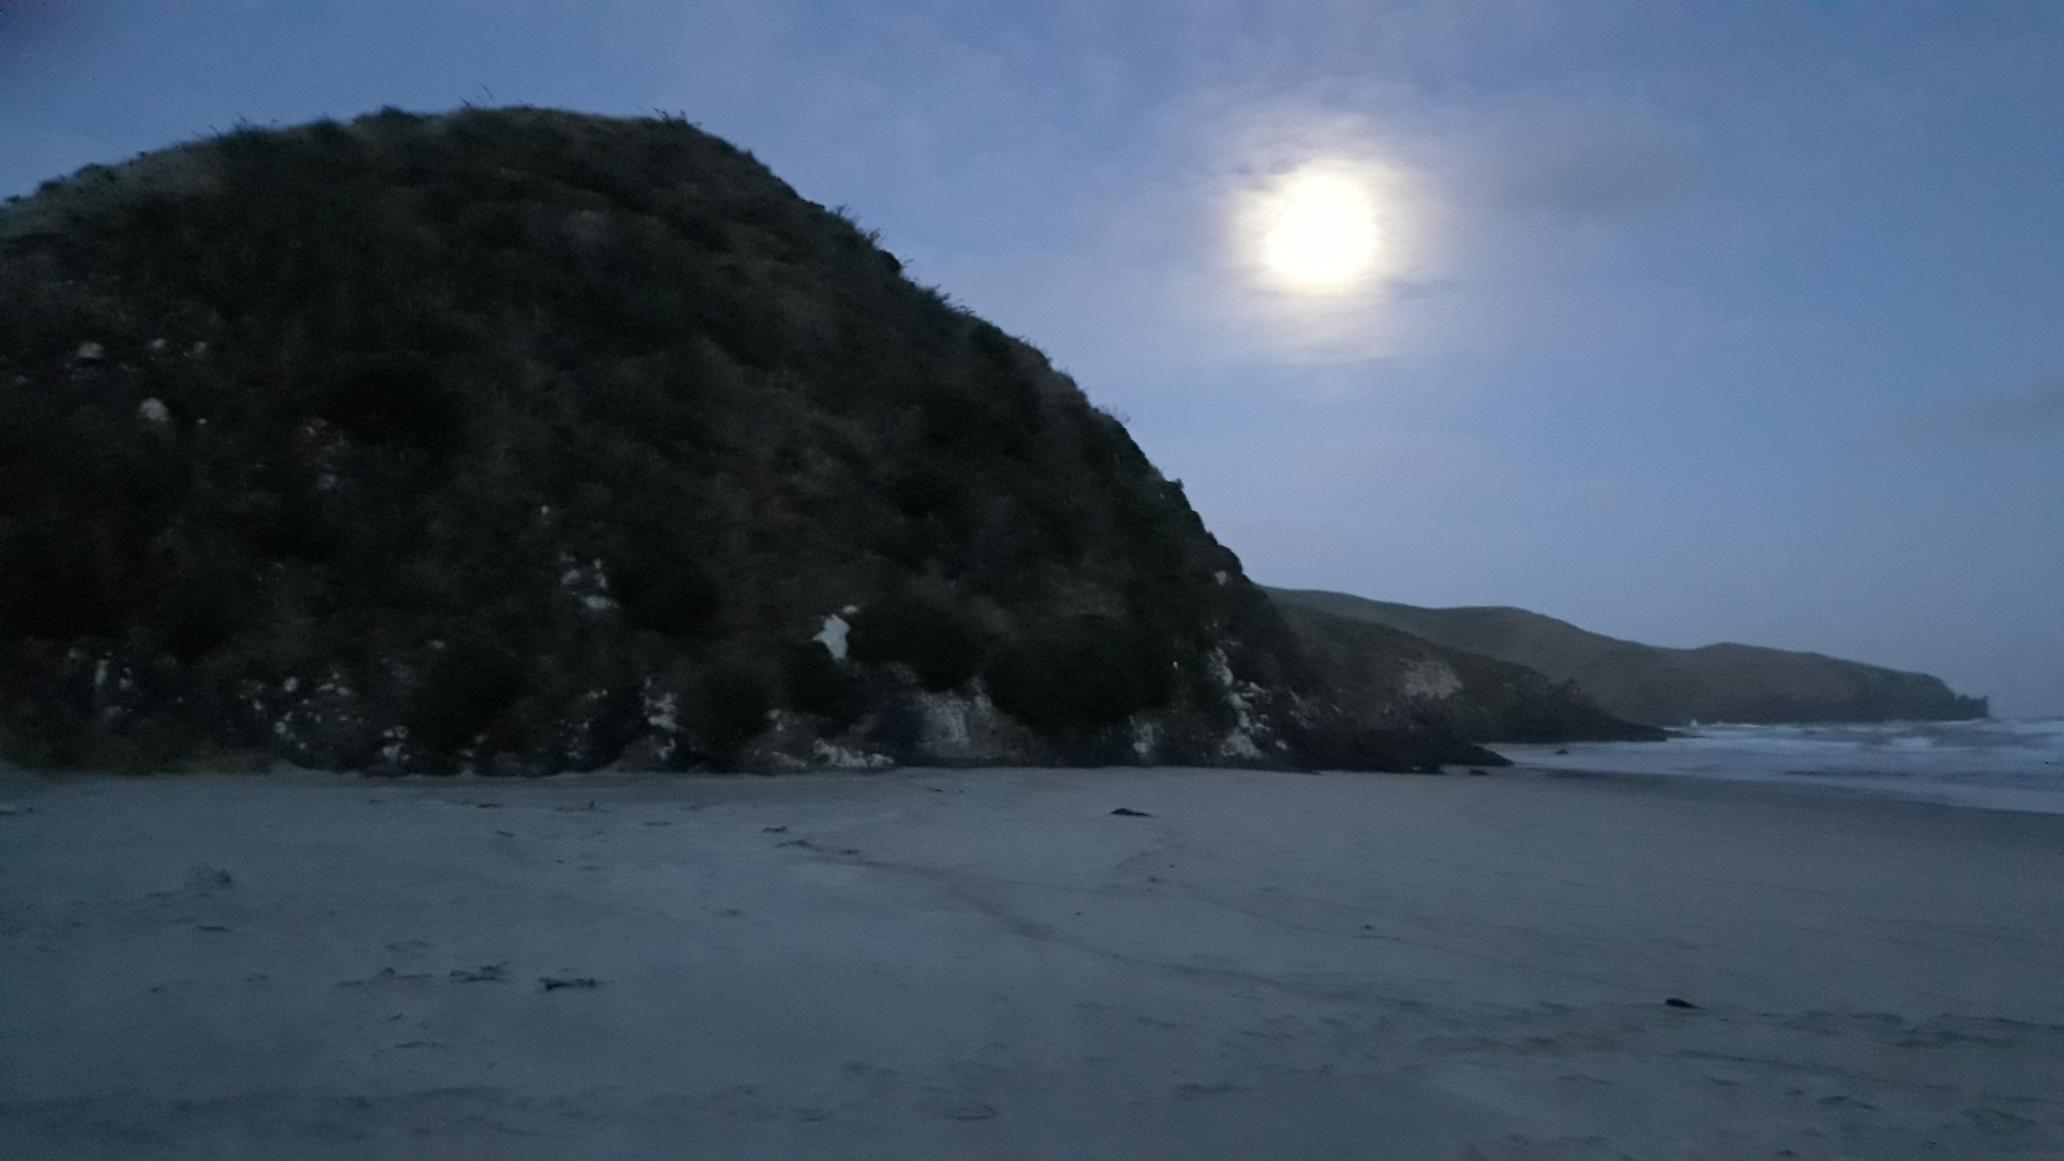 Moonrise over Allans beach